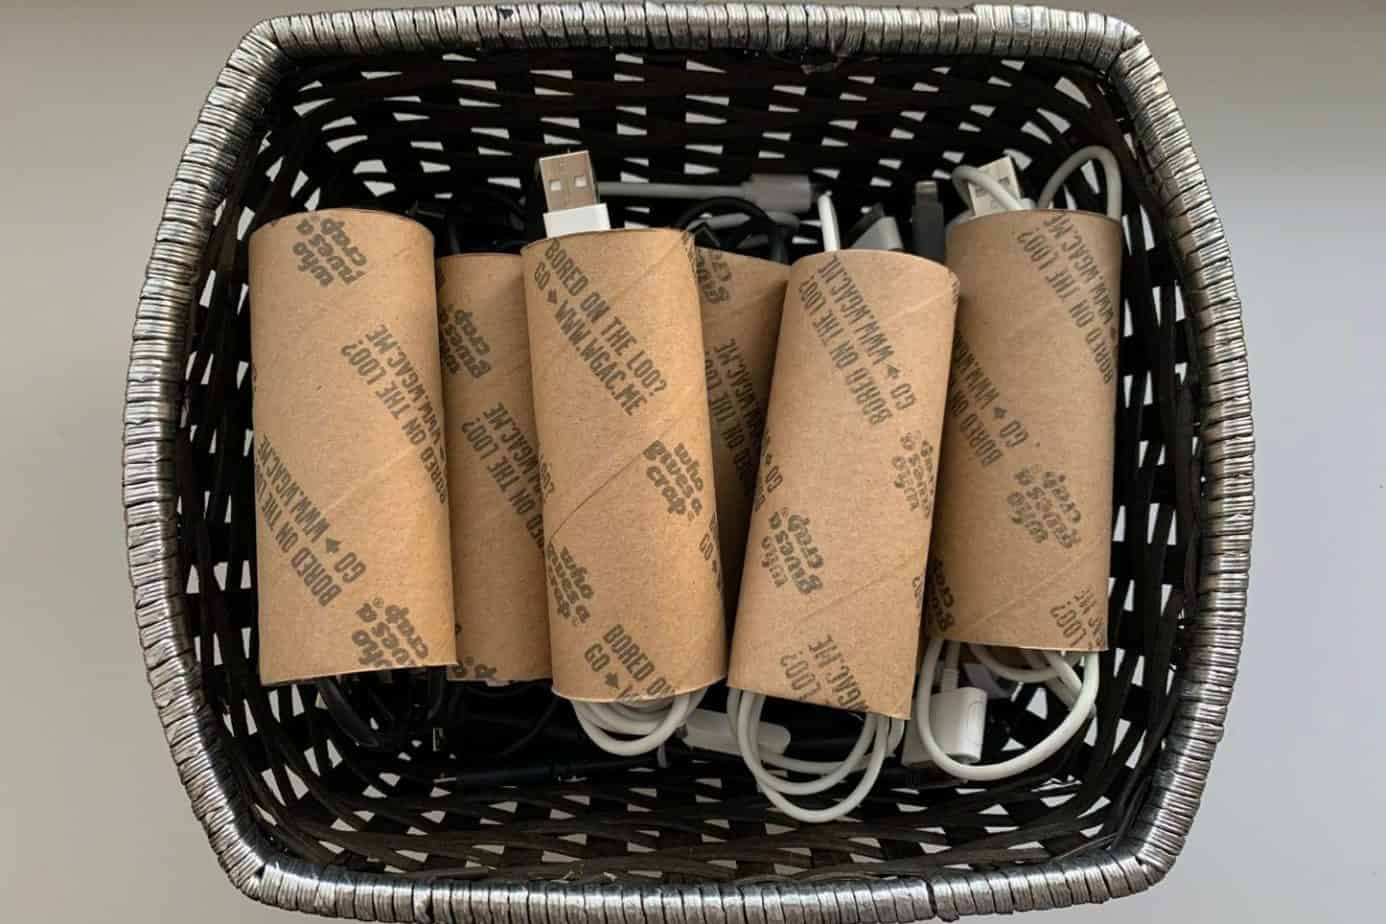 upcycled toilet paper rolls